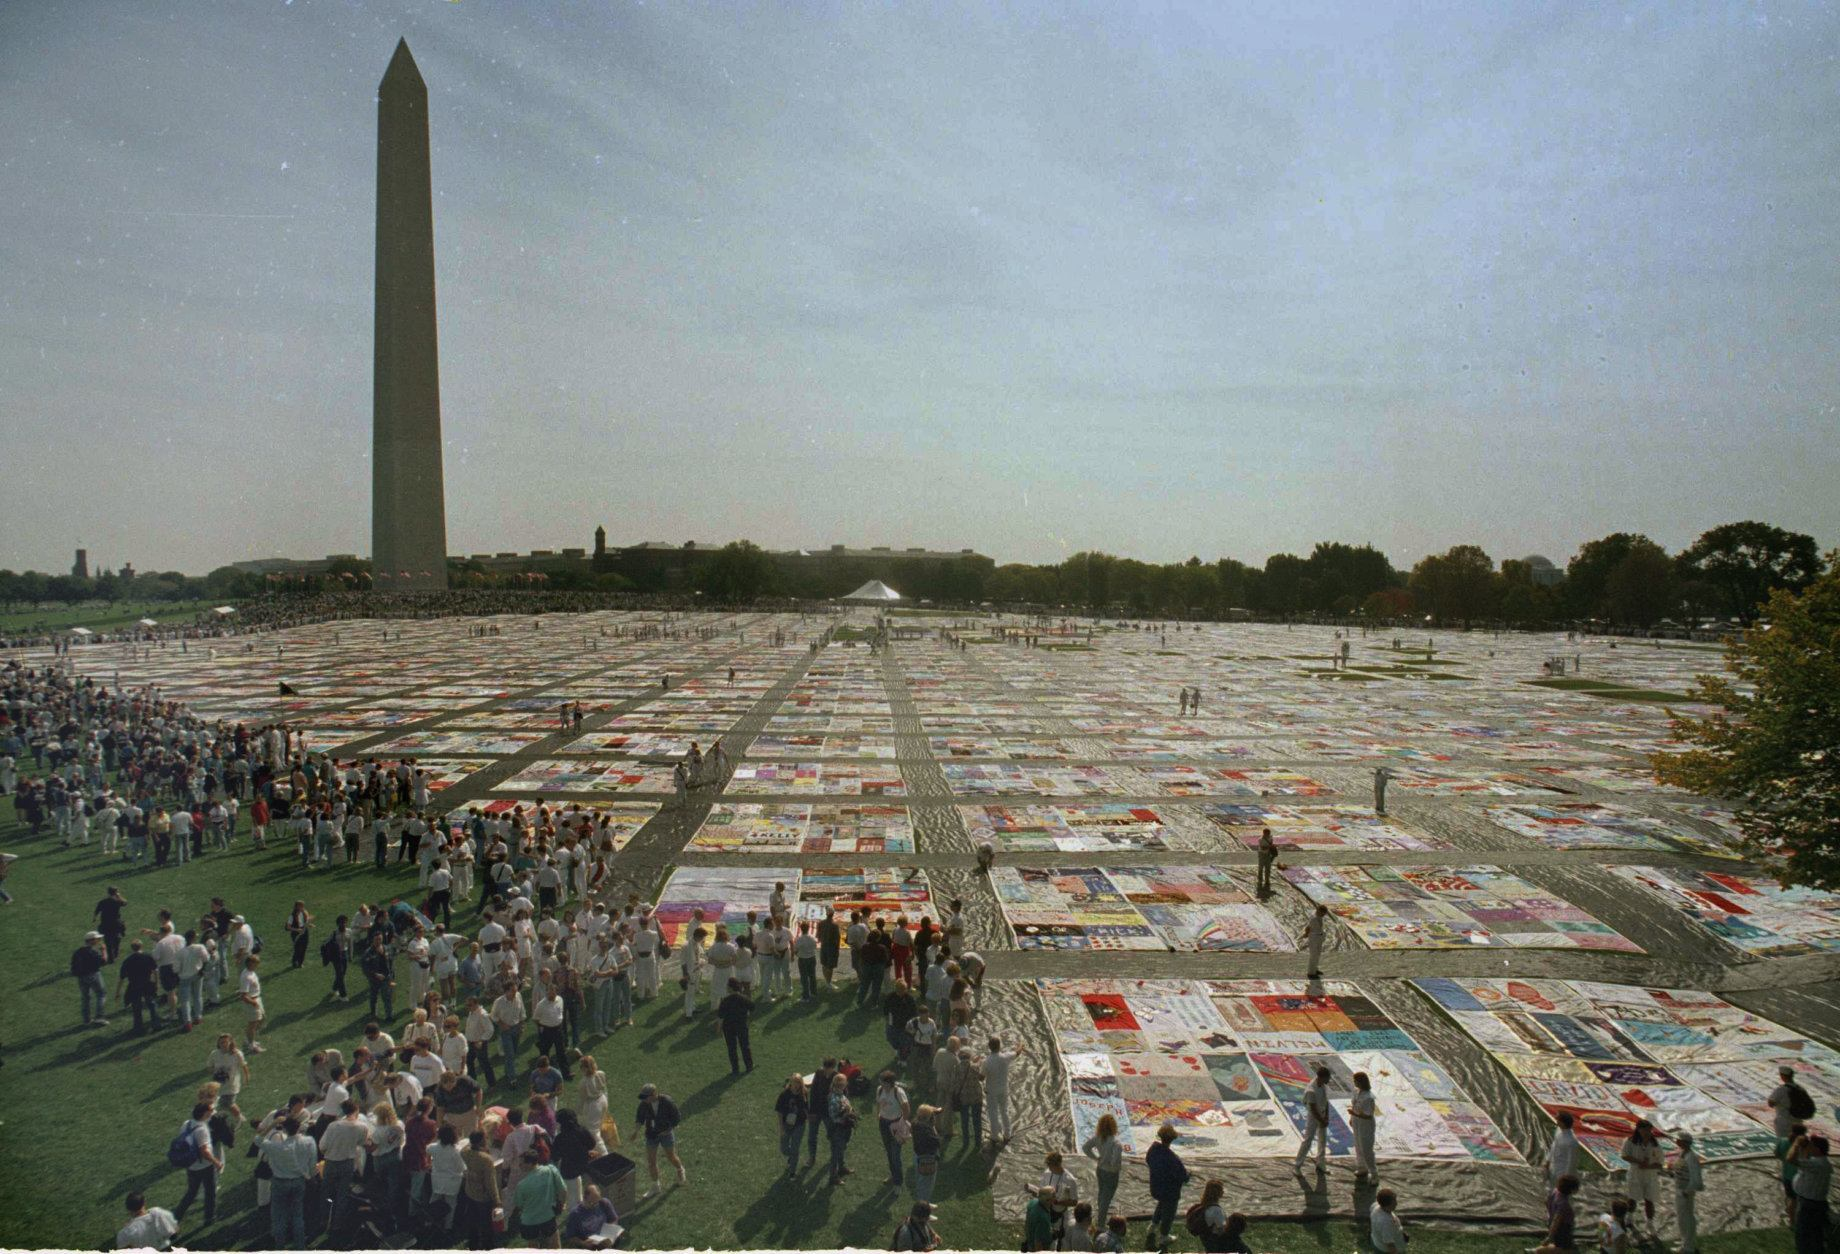 <p>Periodic AIDS quilts have made for moving visuals.</p>